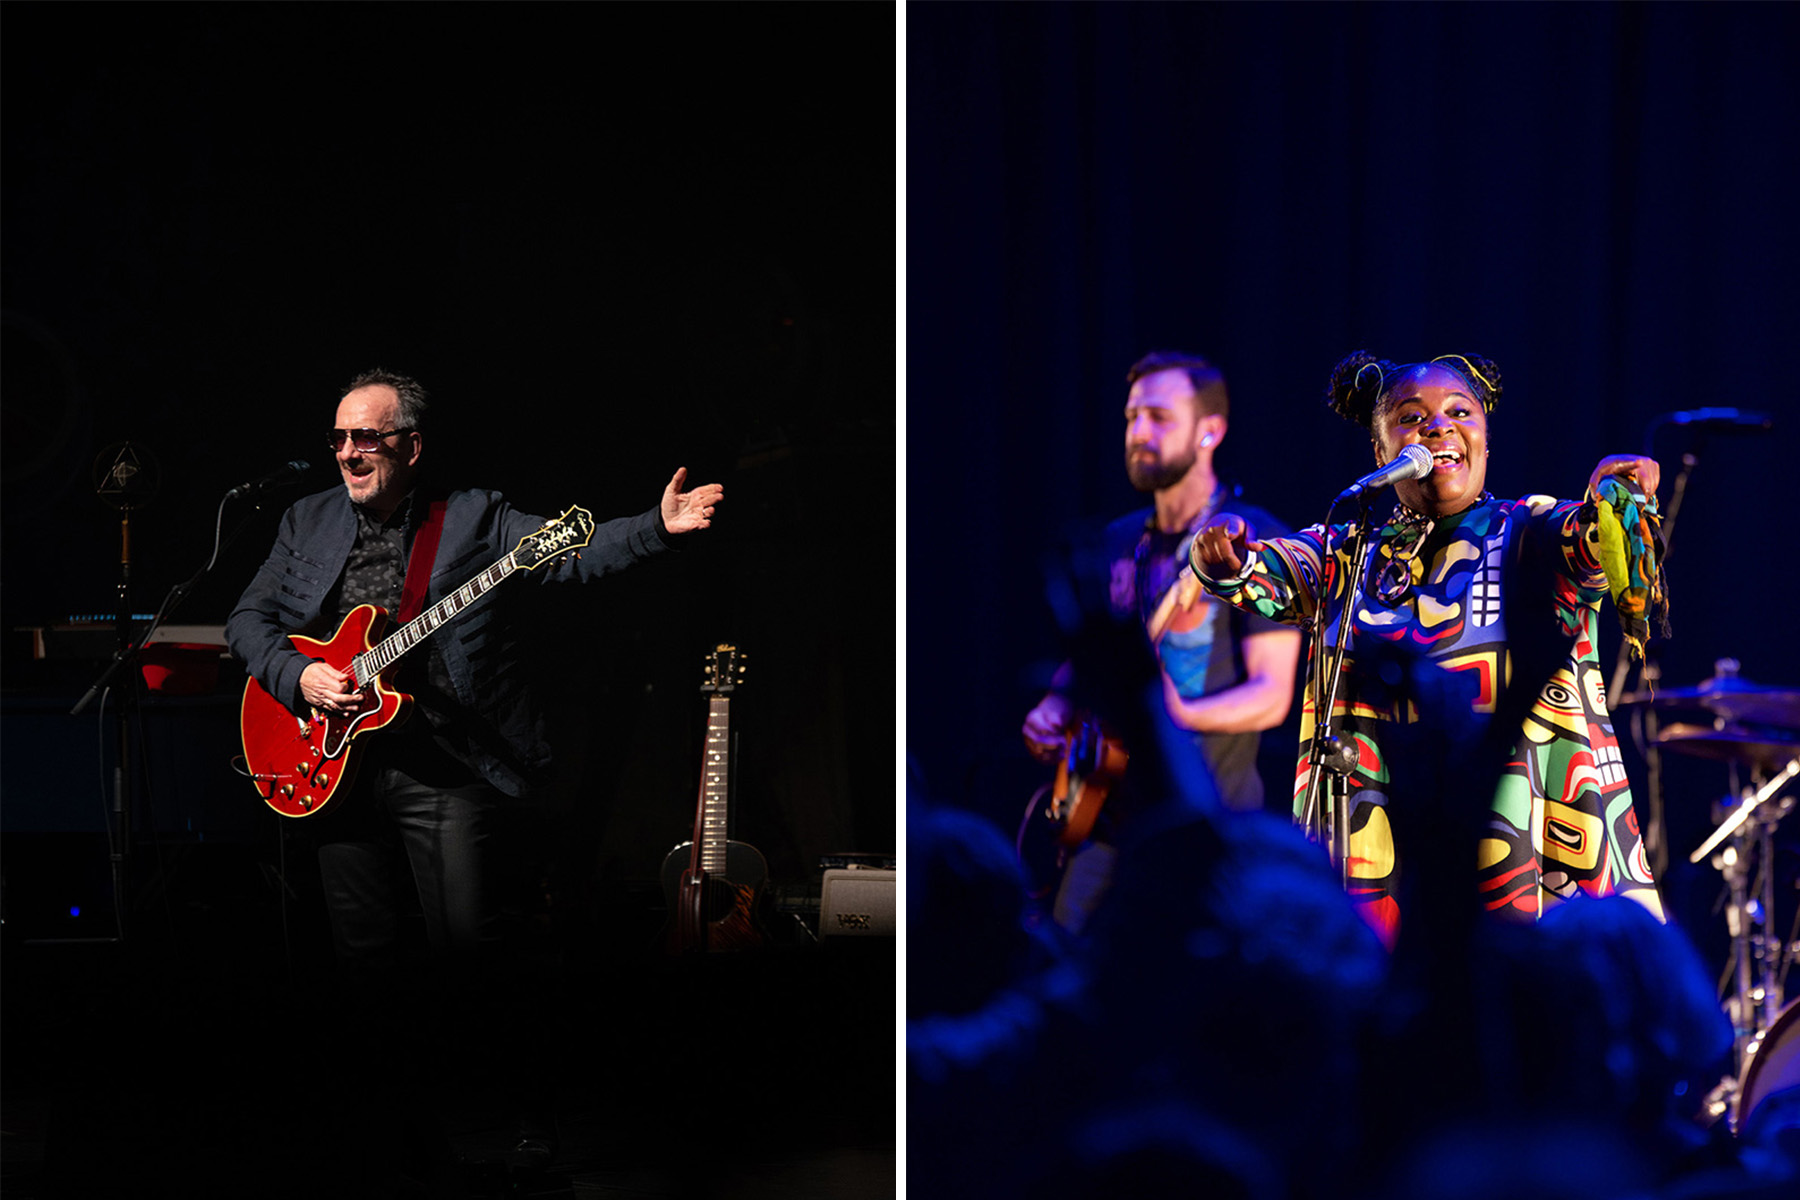 180607_FOV_ELVIS_COSTELLO_TANK_AND_THE_BANGAS